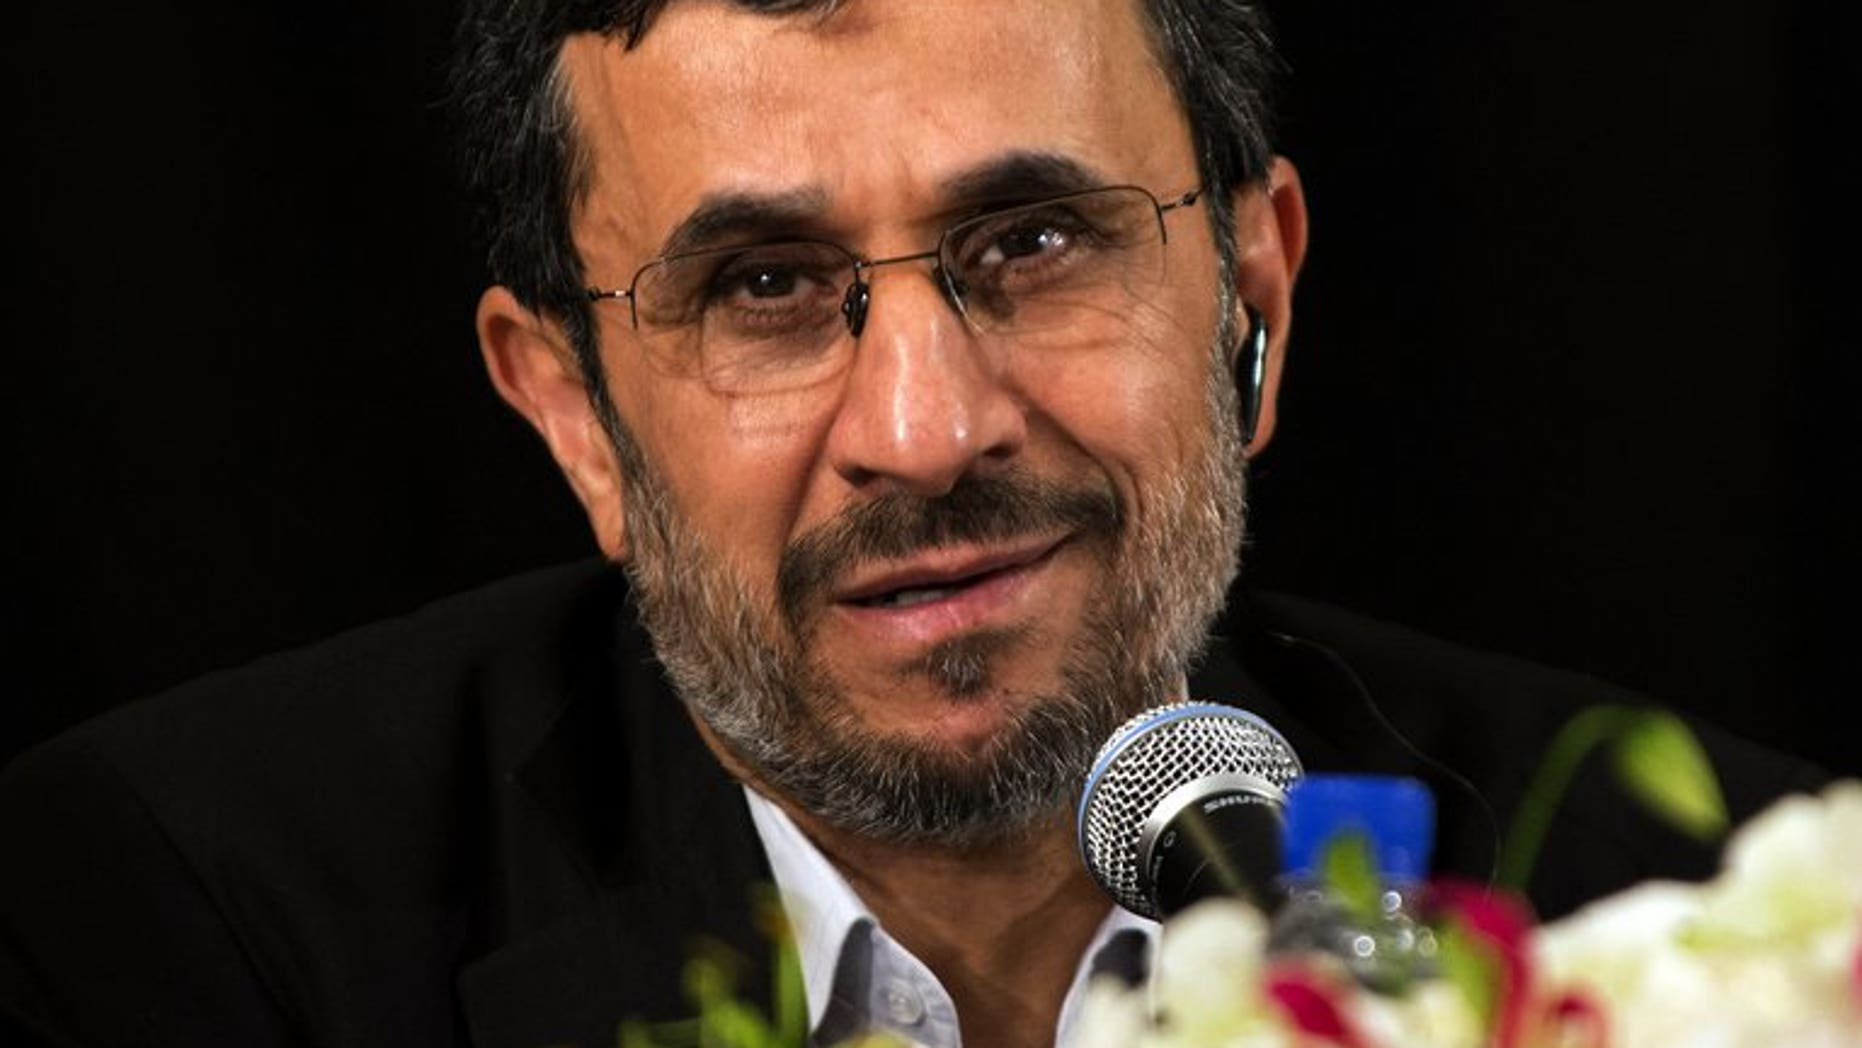 """Iran's President Mahmoud Ahmadinejad speaks at a news conference on September 26, 2012 in New York. Ahmadinejad said in Iraq on Thursday that Tehran and Baghdad have an """"exceptional"""" role to play in the region's security."""